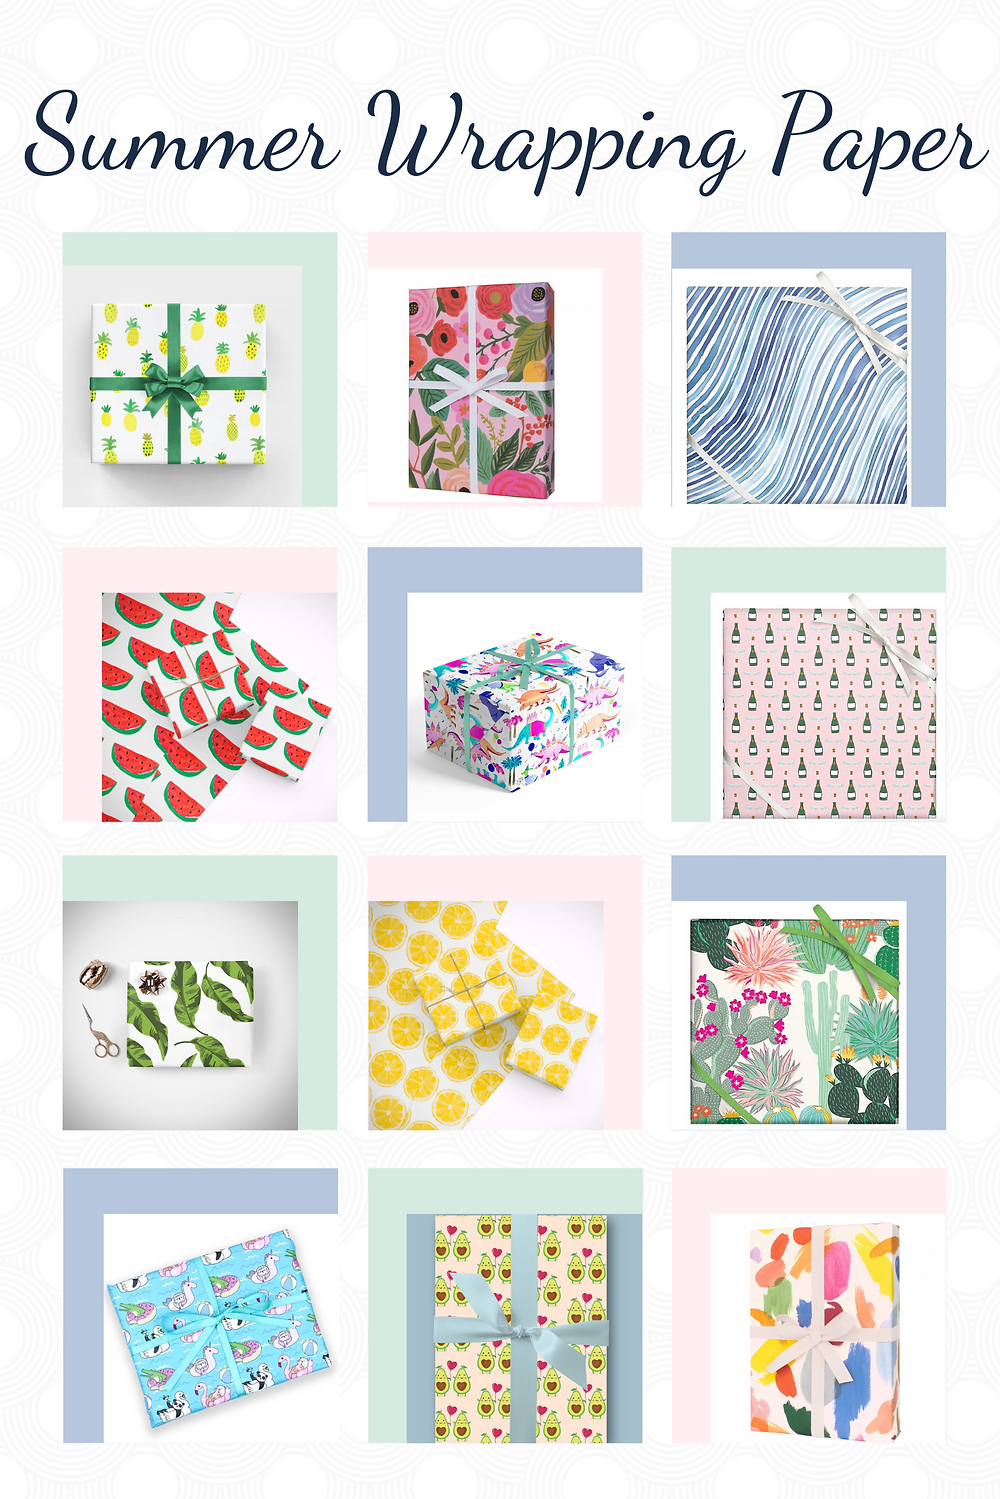 Summer Wrapping Paper